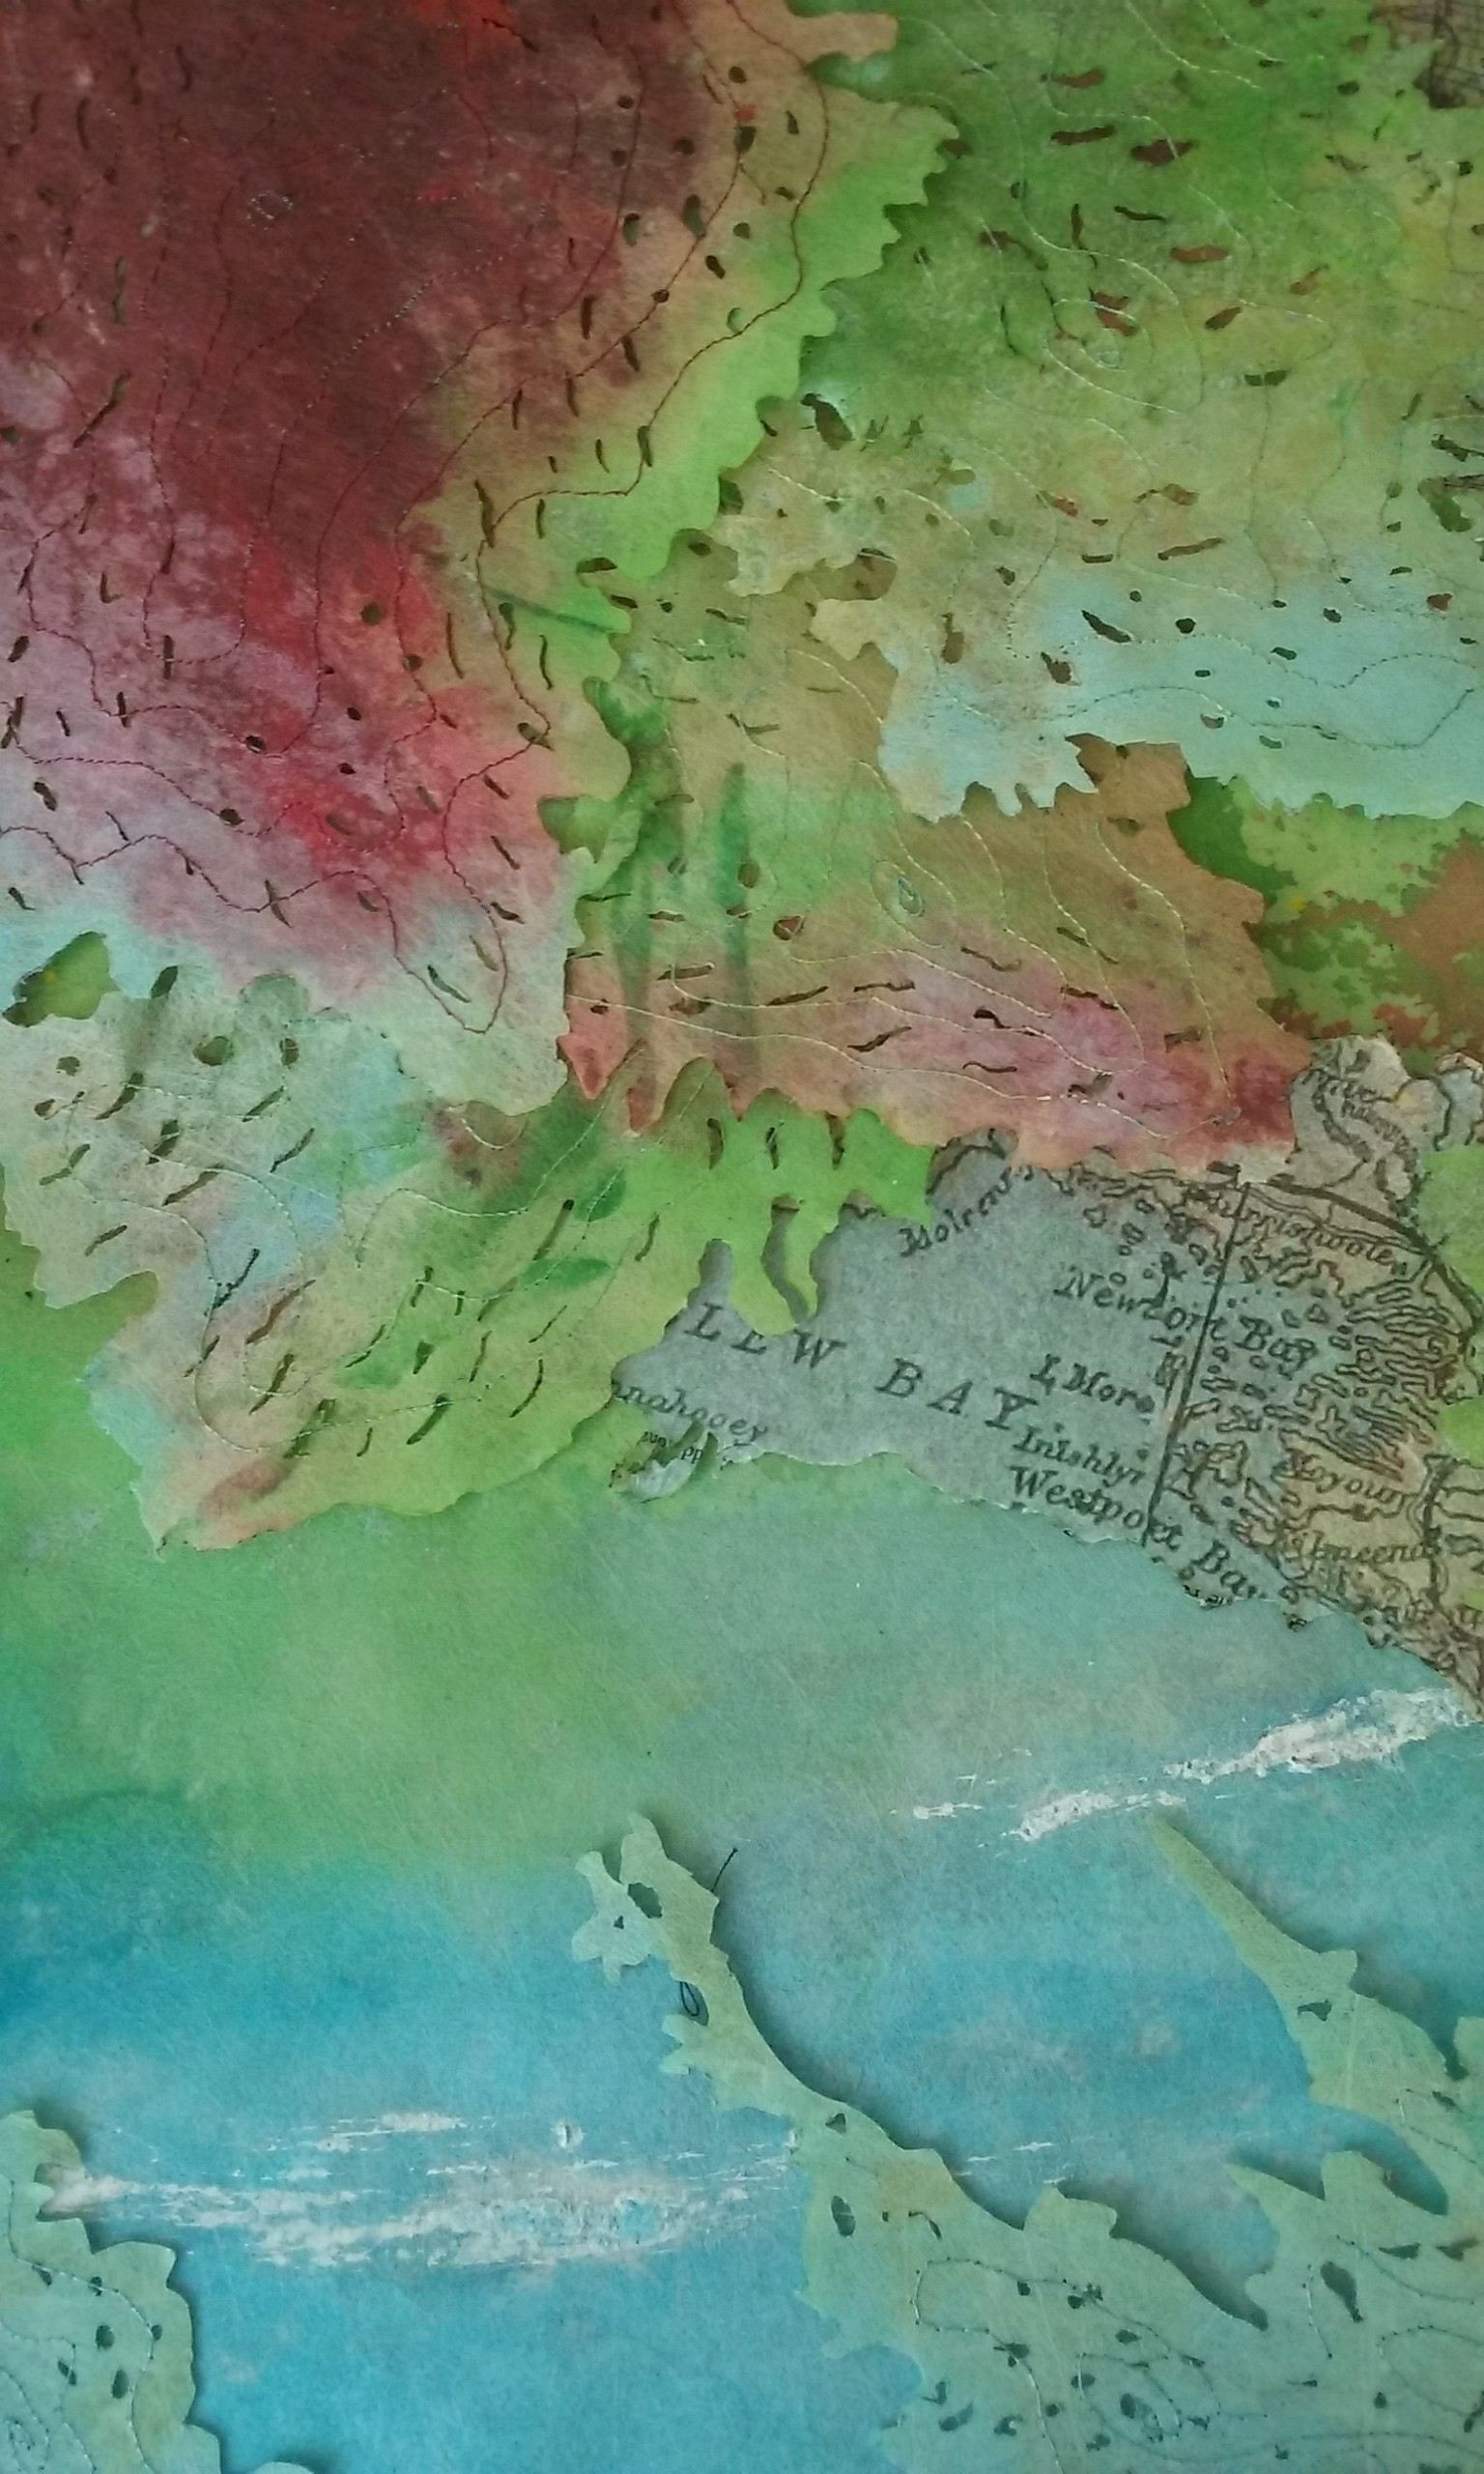 Clew Bay (detail), Marie Dunne, element15